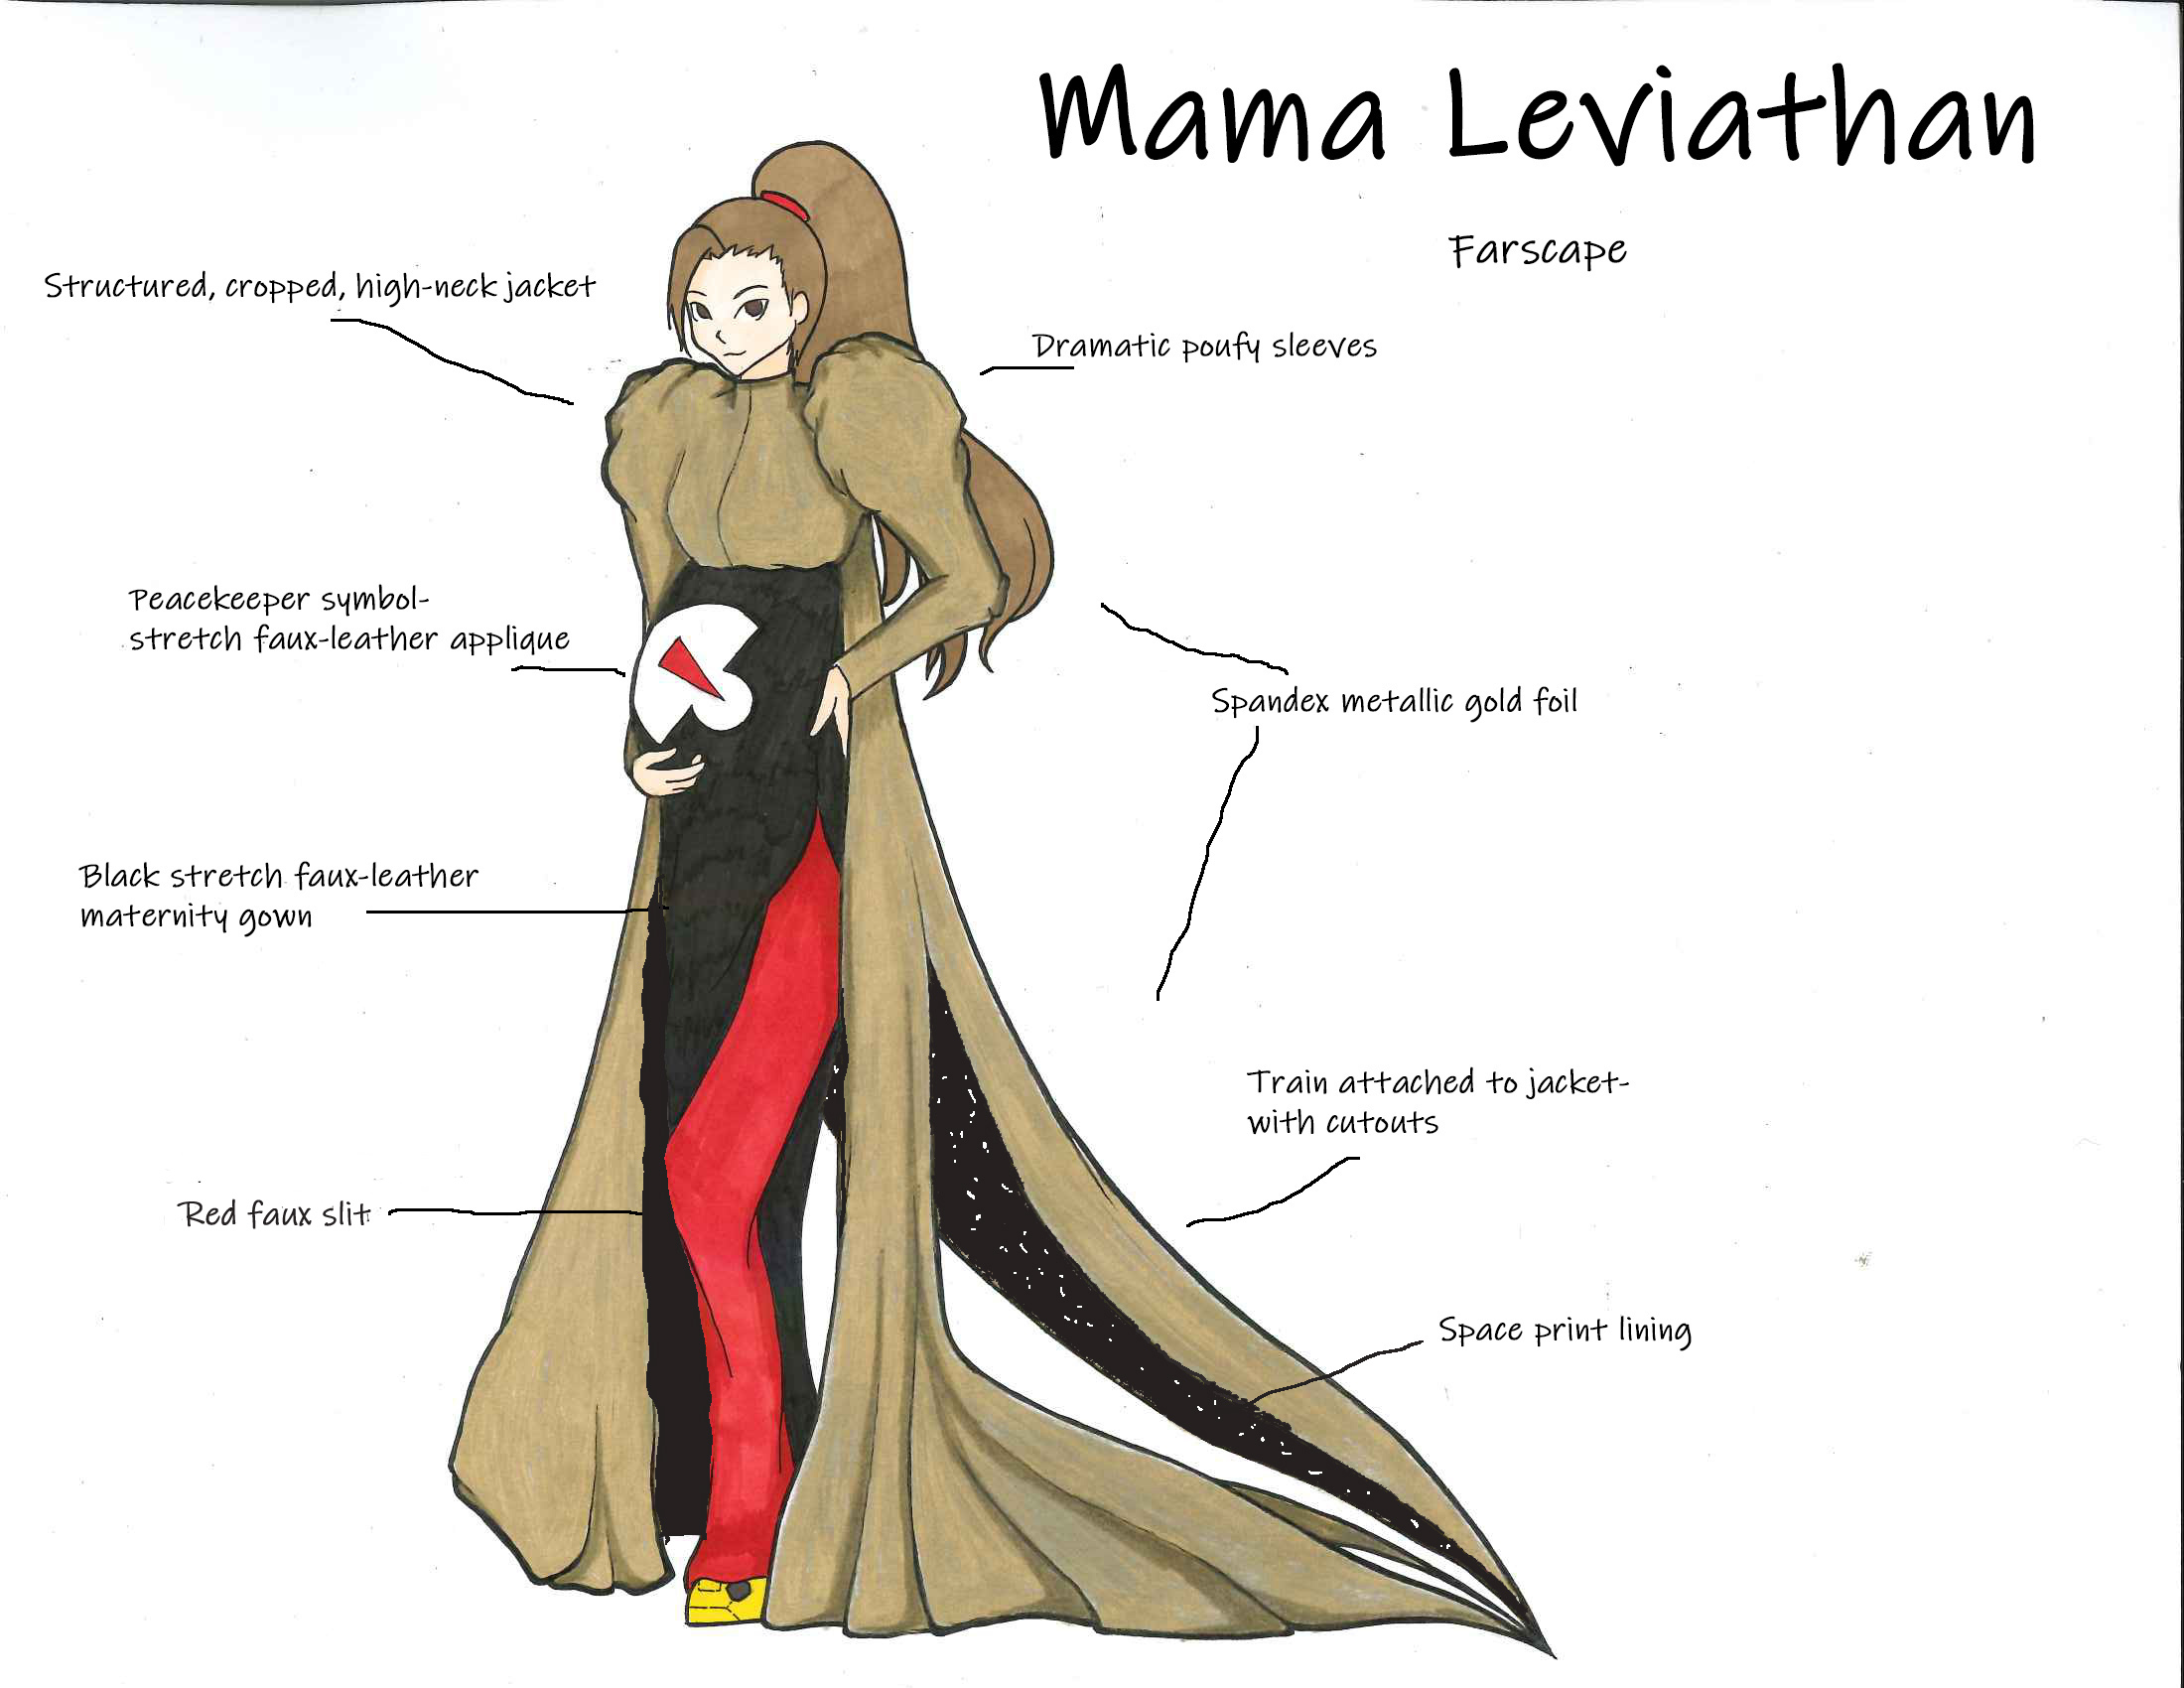 Mama Leviathan inspired by Farscape by Emily Blake